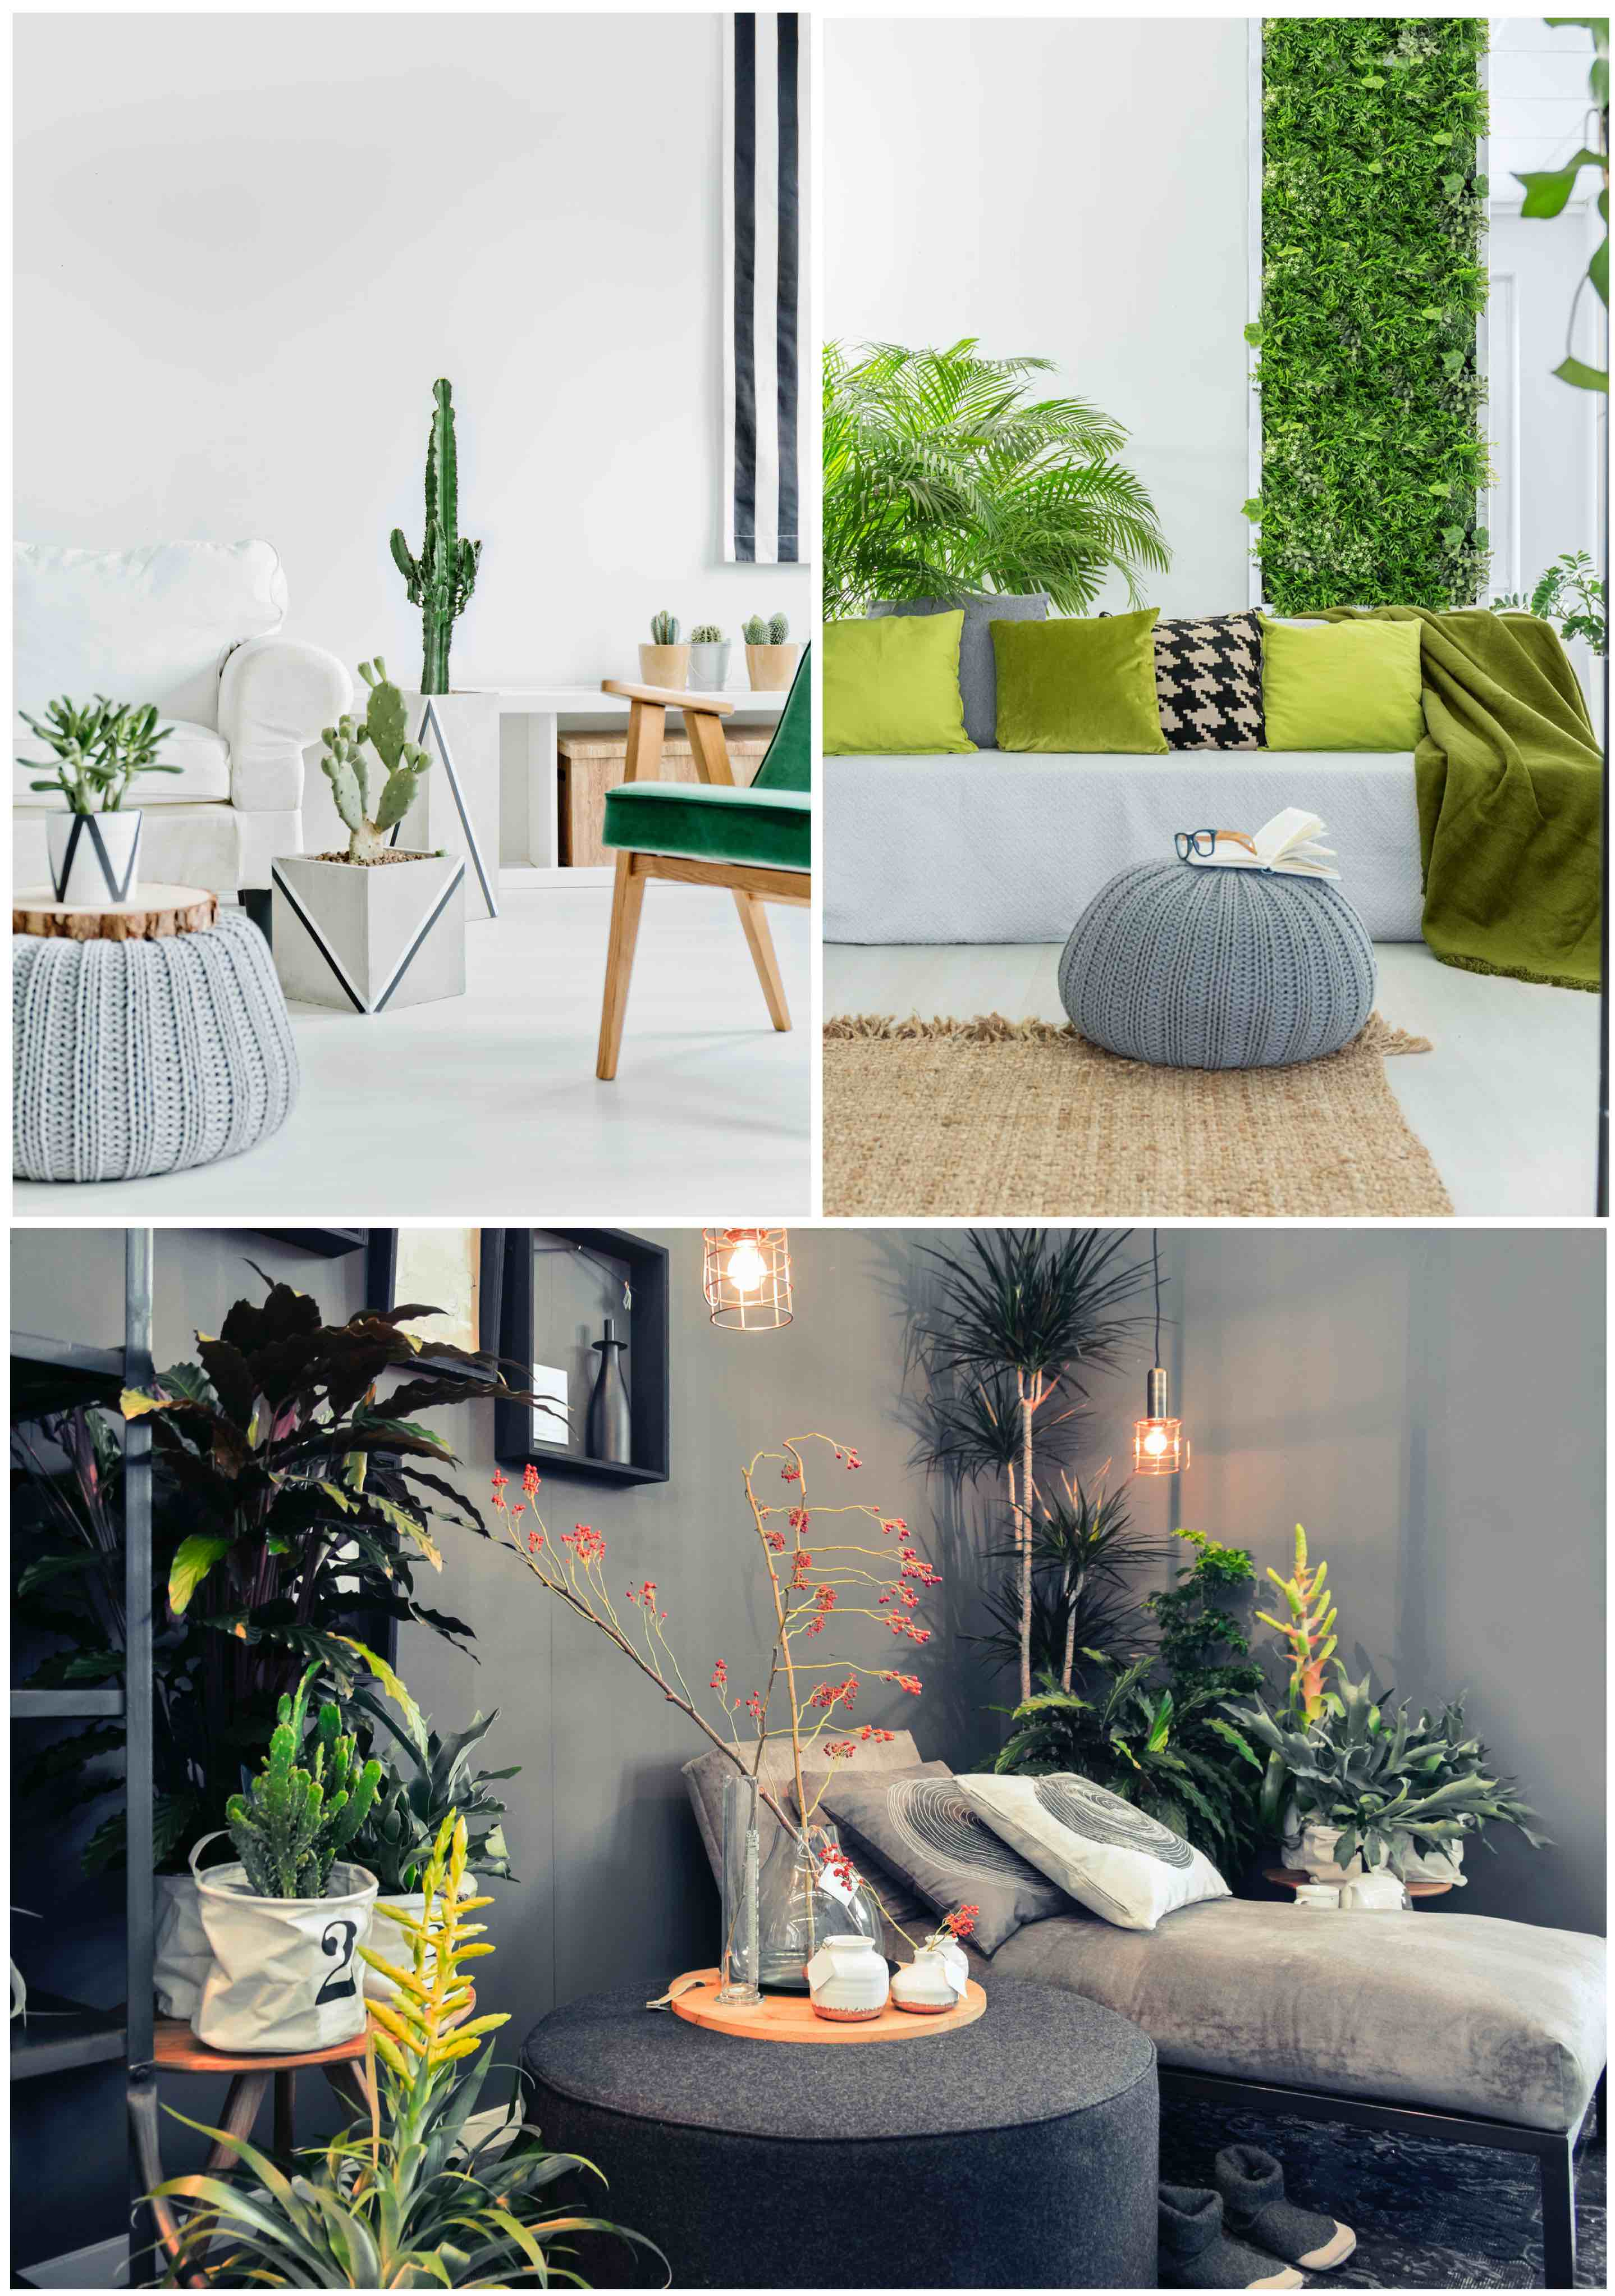 Interior Design Tip 2: Use plants to decorating your room